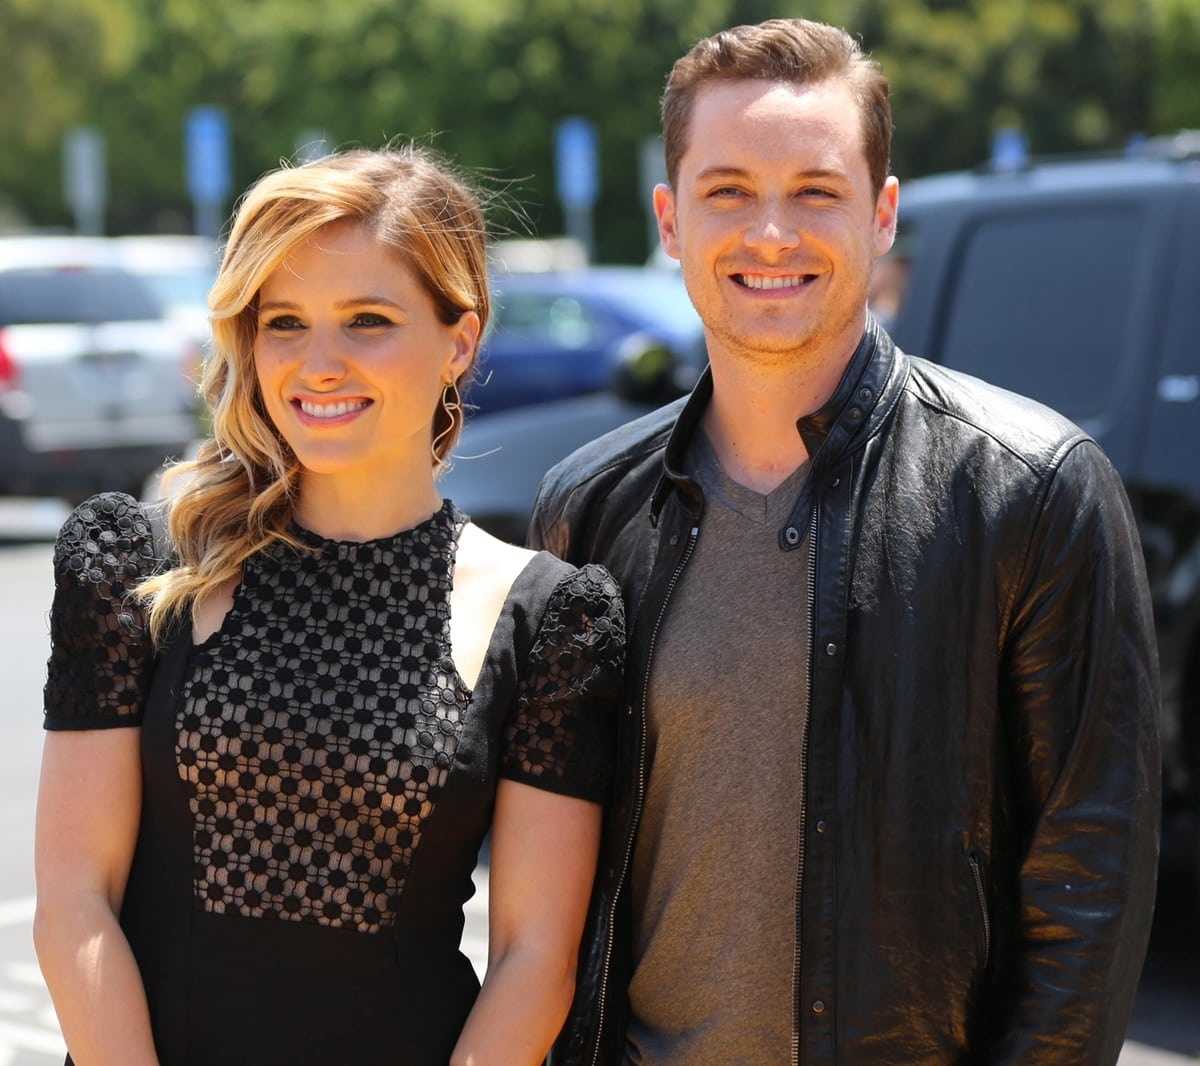 Sophia Bush and Jesse Lee Soffer called it quits in 2015 after dating for just over a year